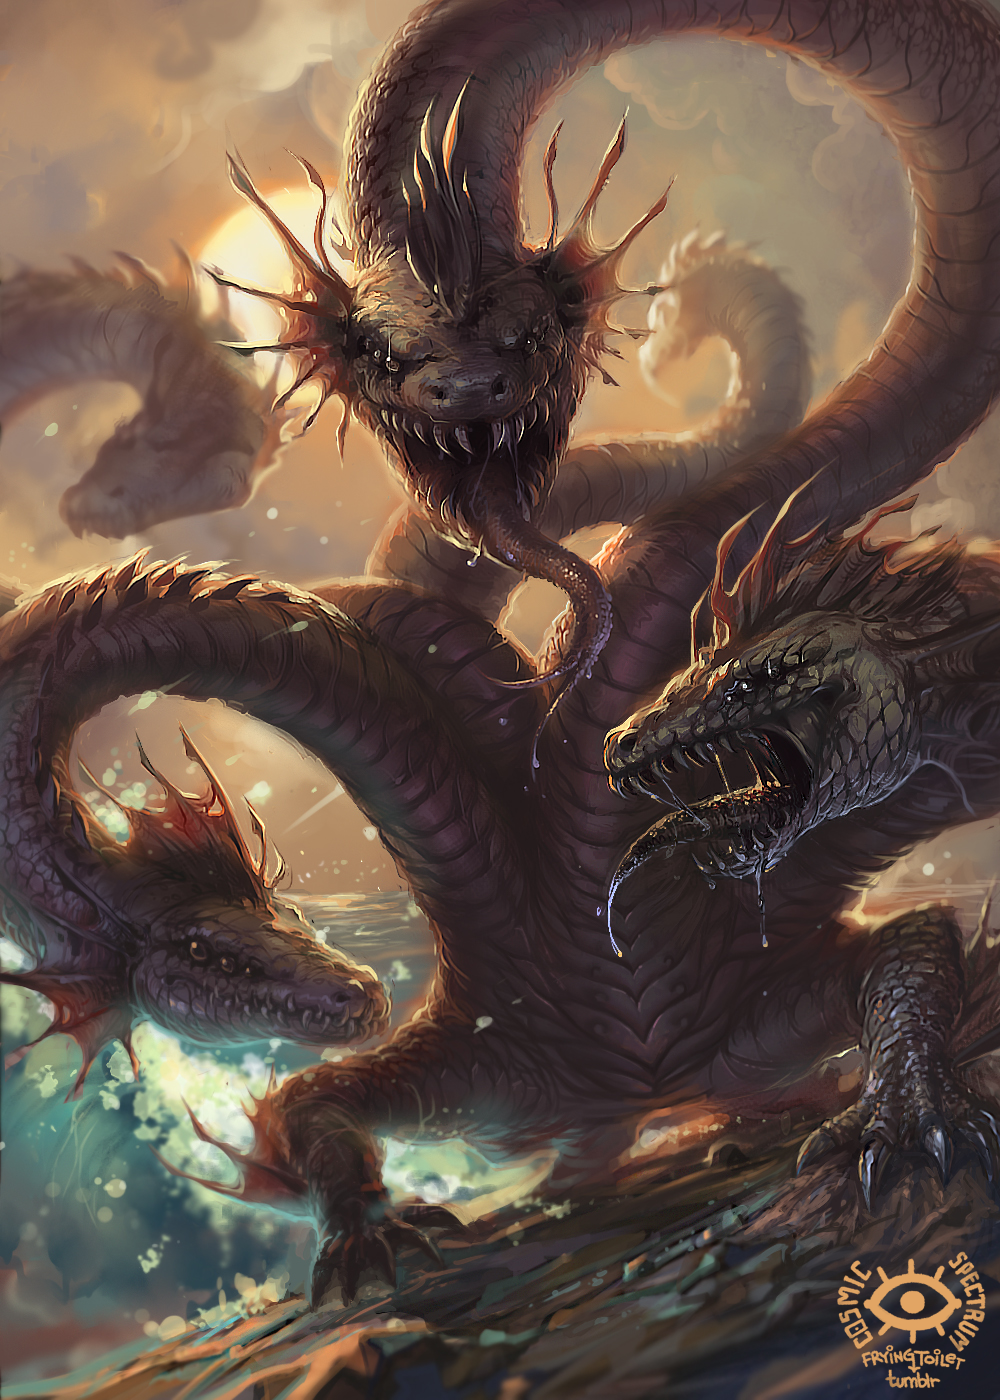 Titans Hydra By Cosmicspectrumm On Deviantart Hydra Mythology Fantasy Beasts Fantasy Dragon